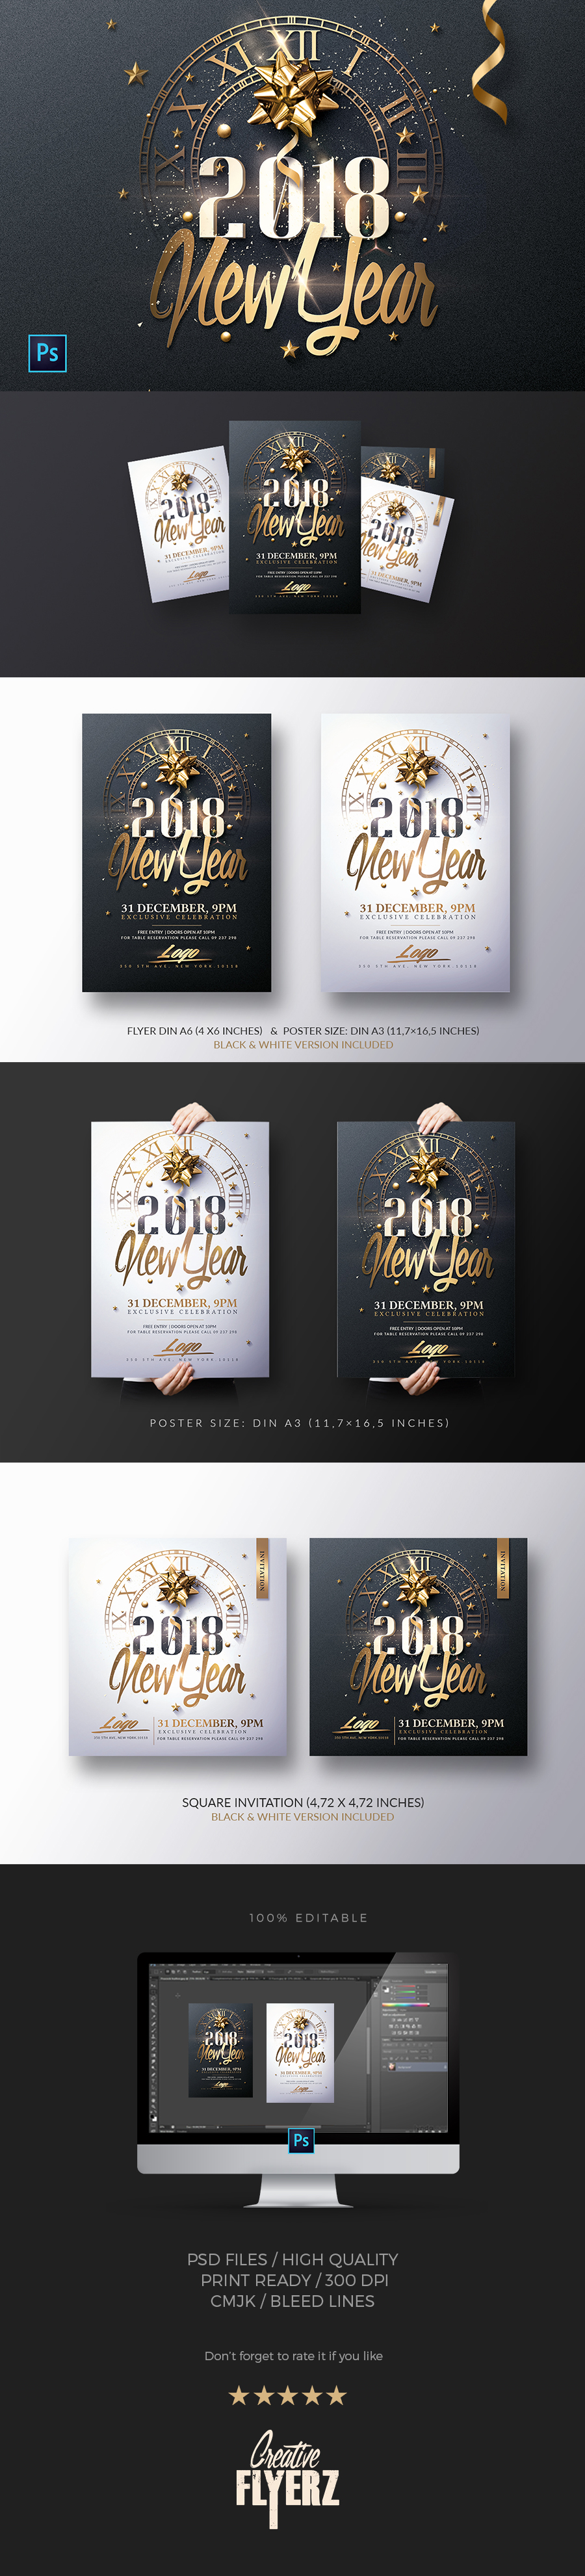 New Year Invitation - Psd Package | Affiches | Pinterest | Classy ...